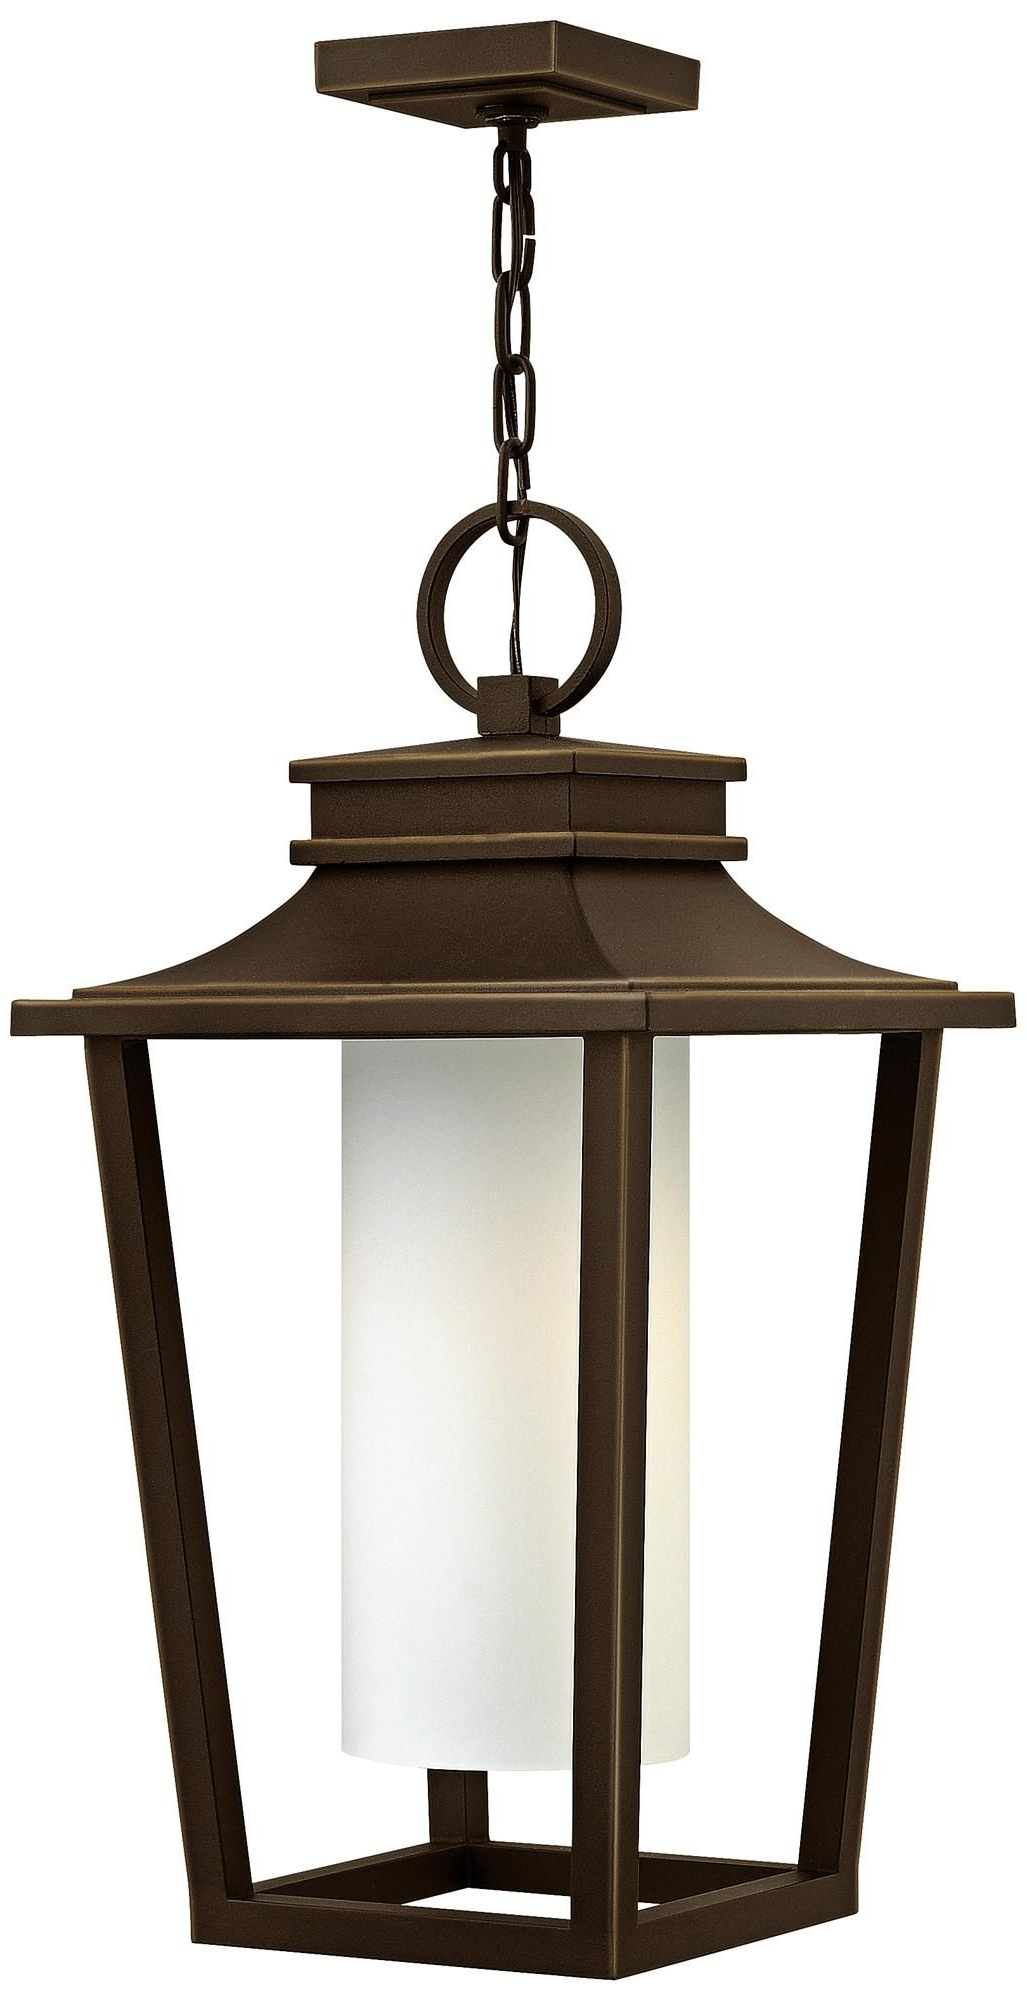 "Trendy Outdoor Oil Lanterns For Patio Intended For Sullivan 23"" High Oil Rubbed Bronze Outdoor Hanging Lantern (View 14 of 20)"